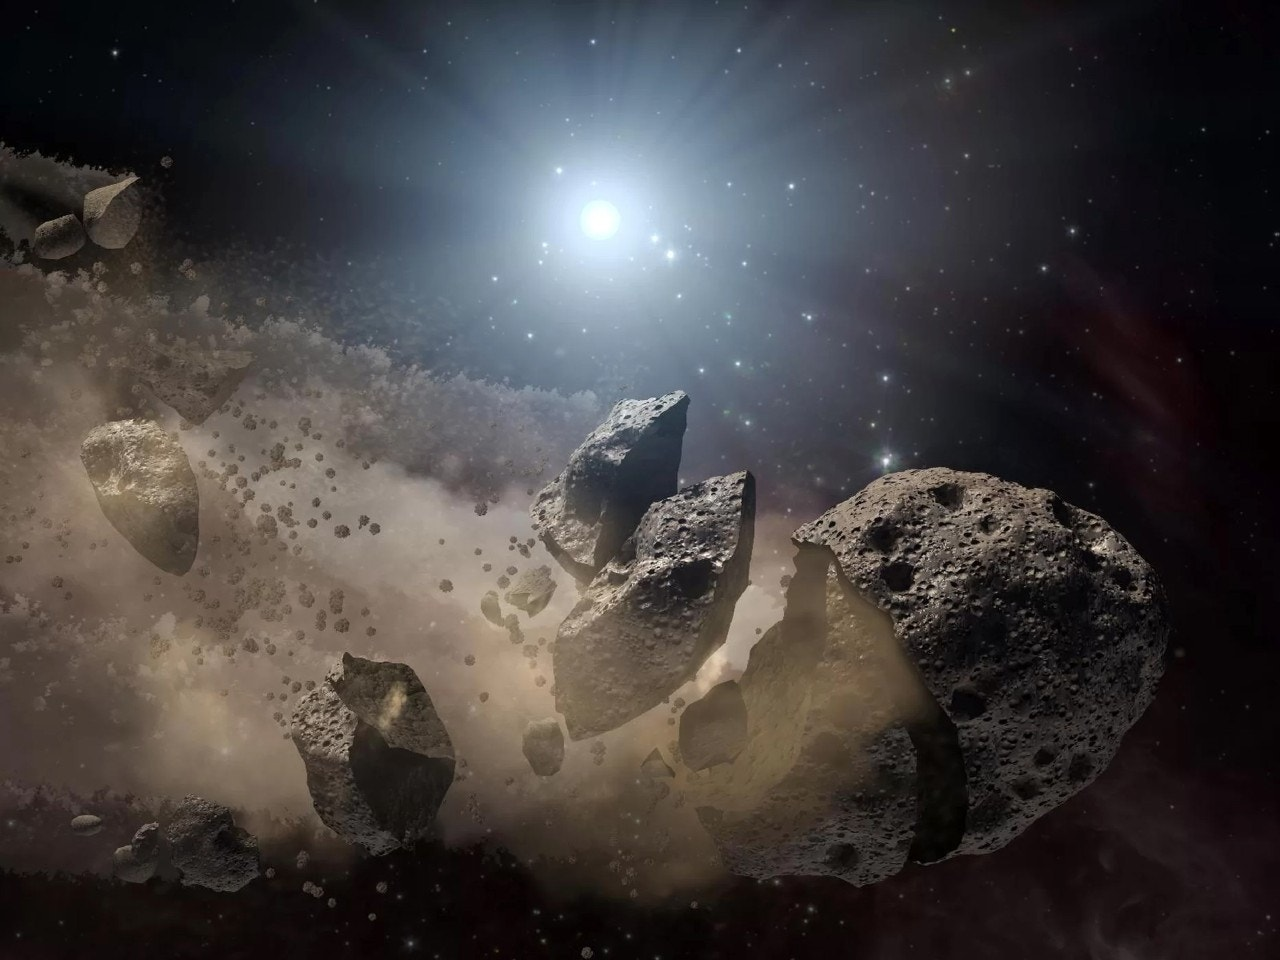 Spacecraft could nuke dangerous asteroid to defend Earth